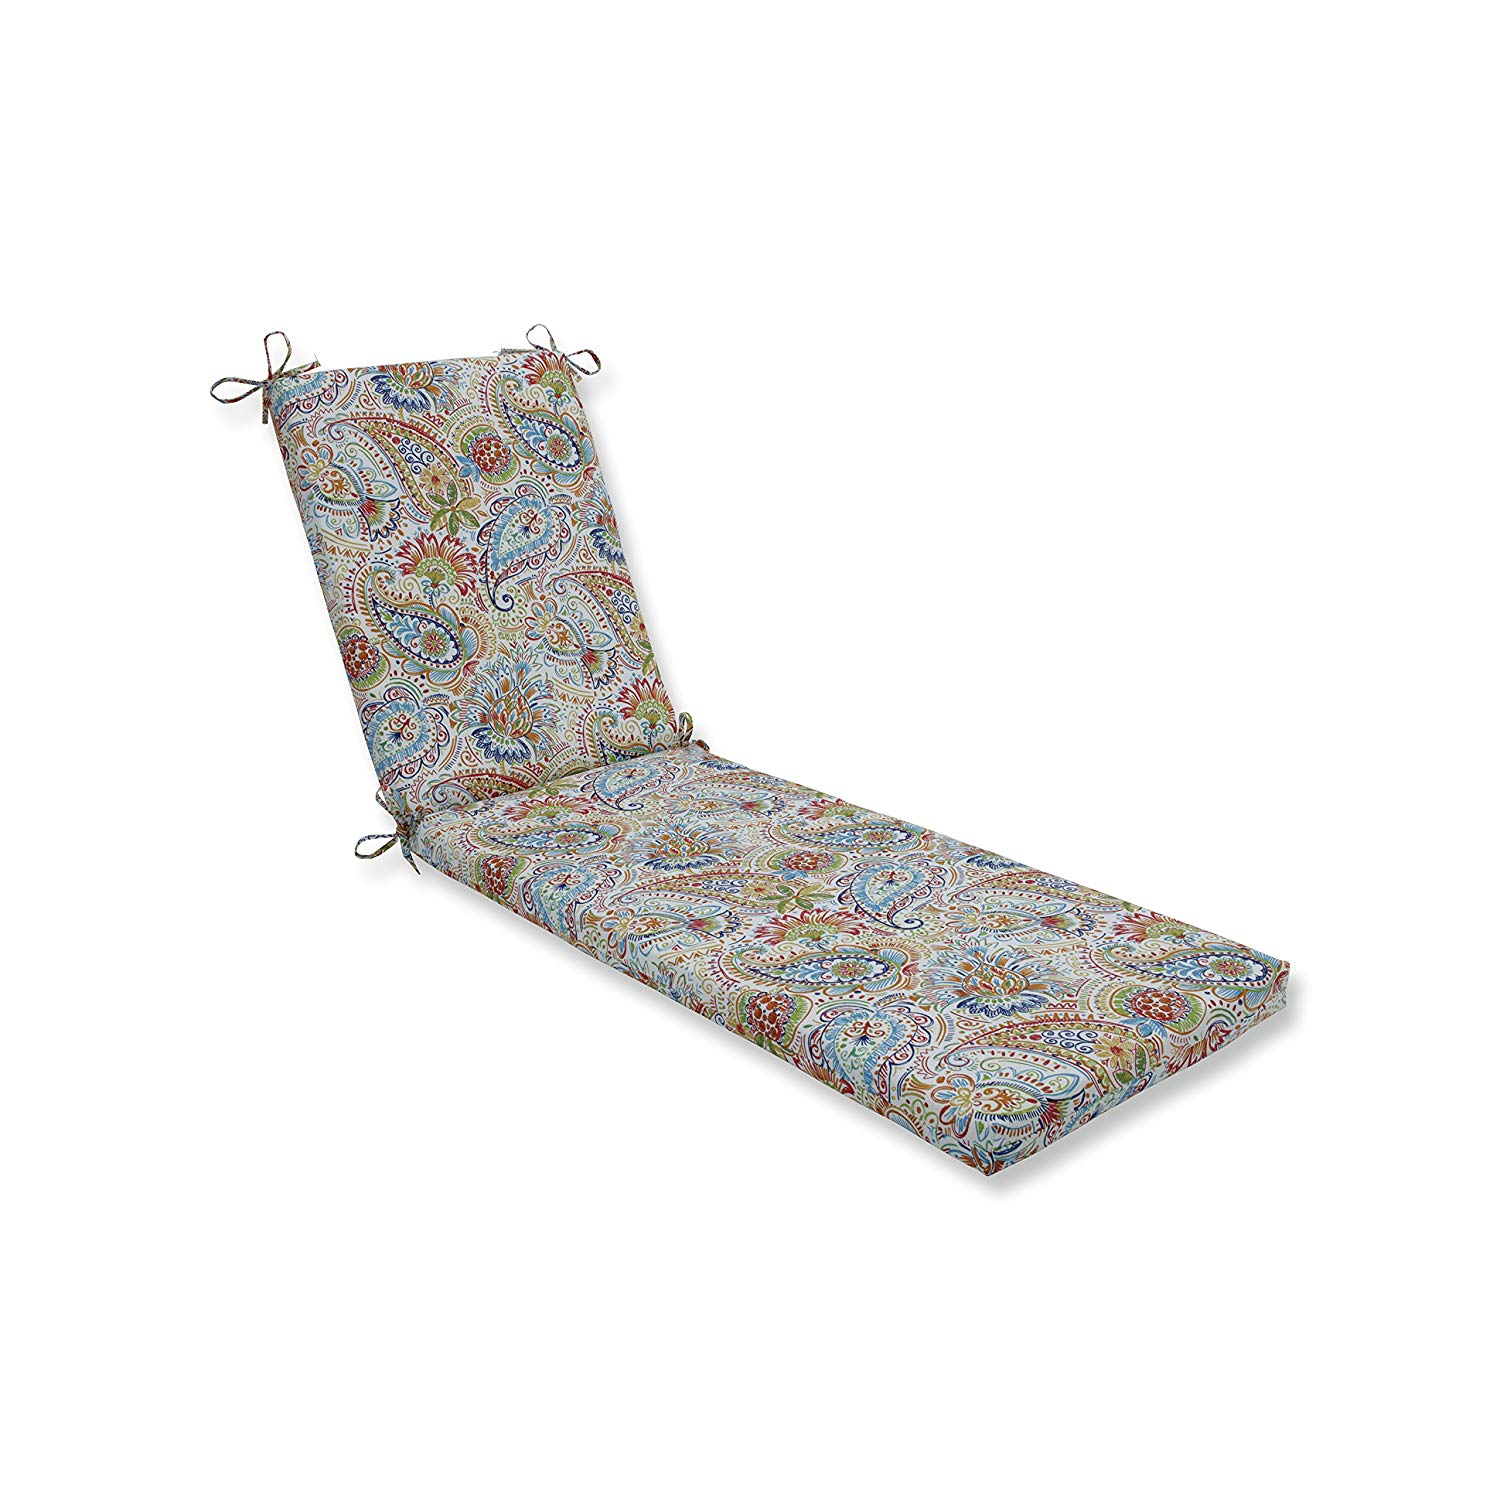 """Pillow Perfect Indoor/Outdoor Gilford Festival Chaise Lounge Cushion, 80"""" x 23"""" x 3"""""""